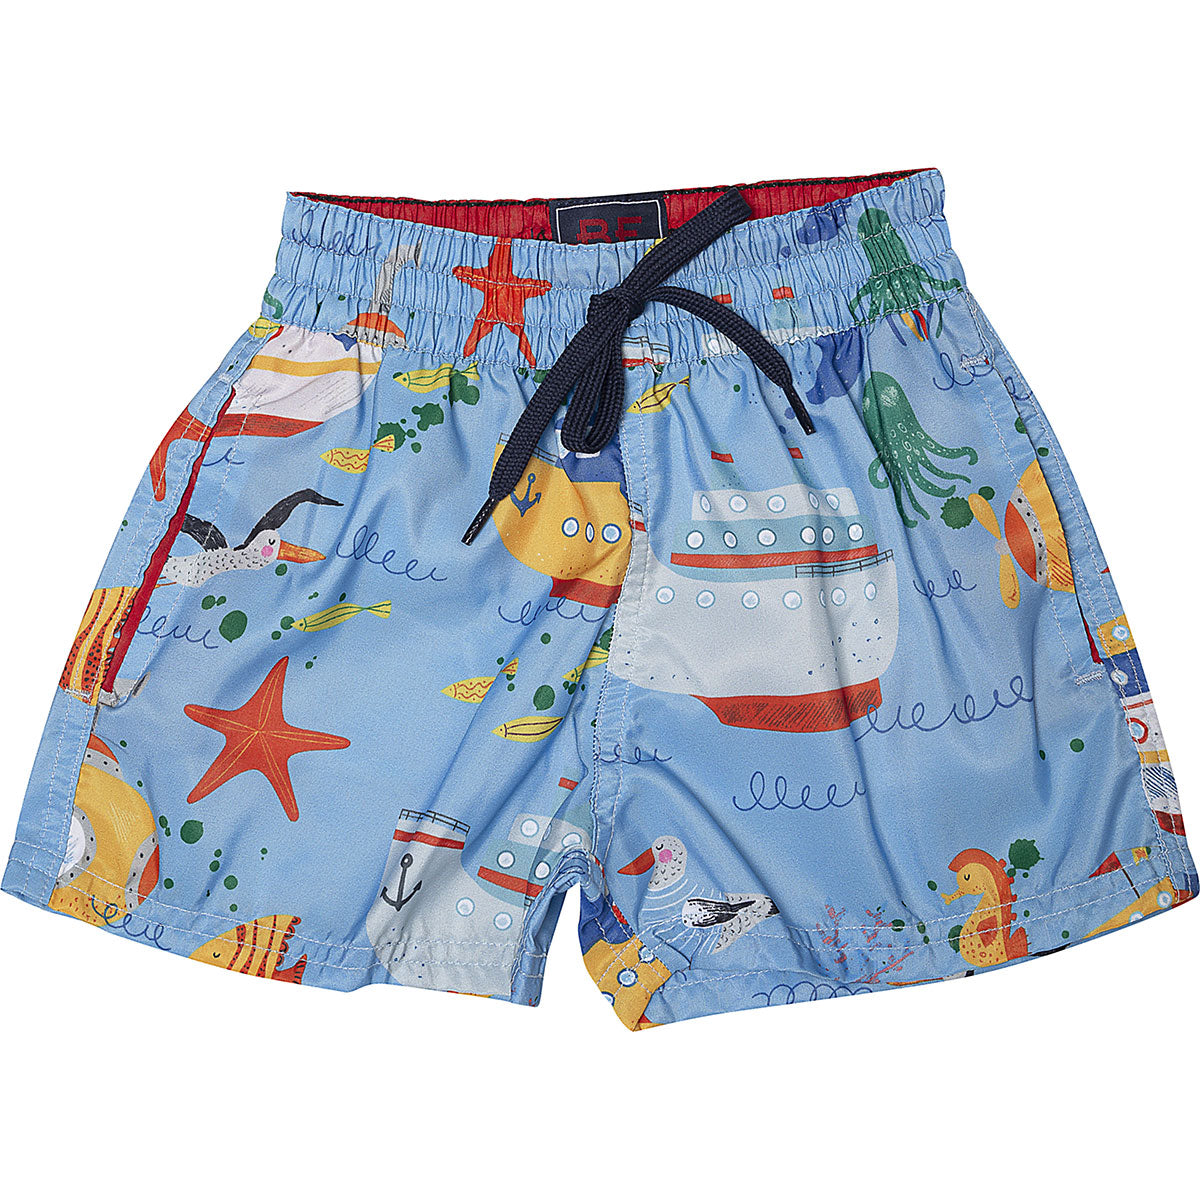 Shorts fundo do mar